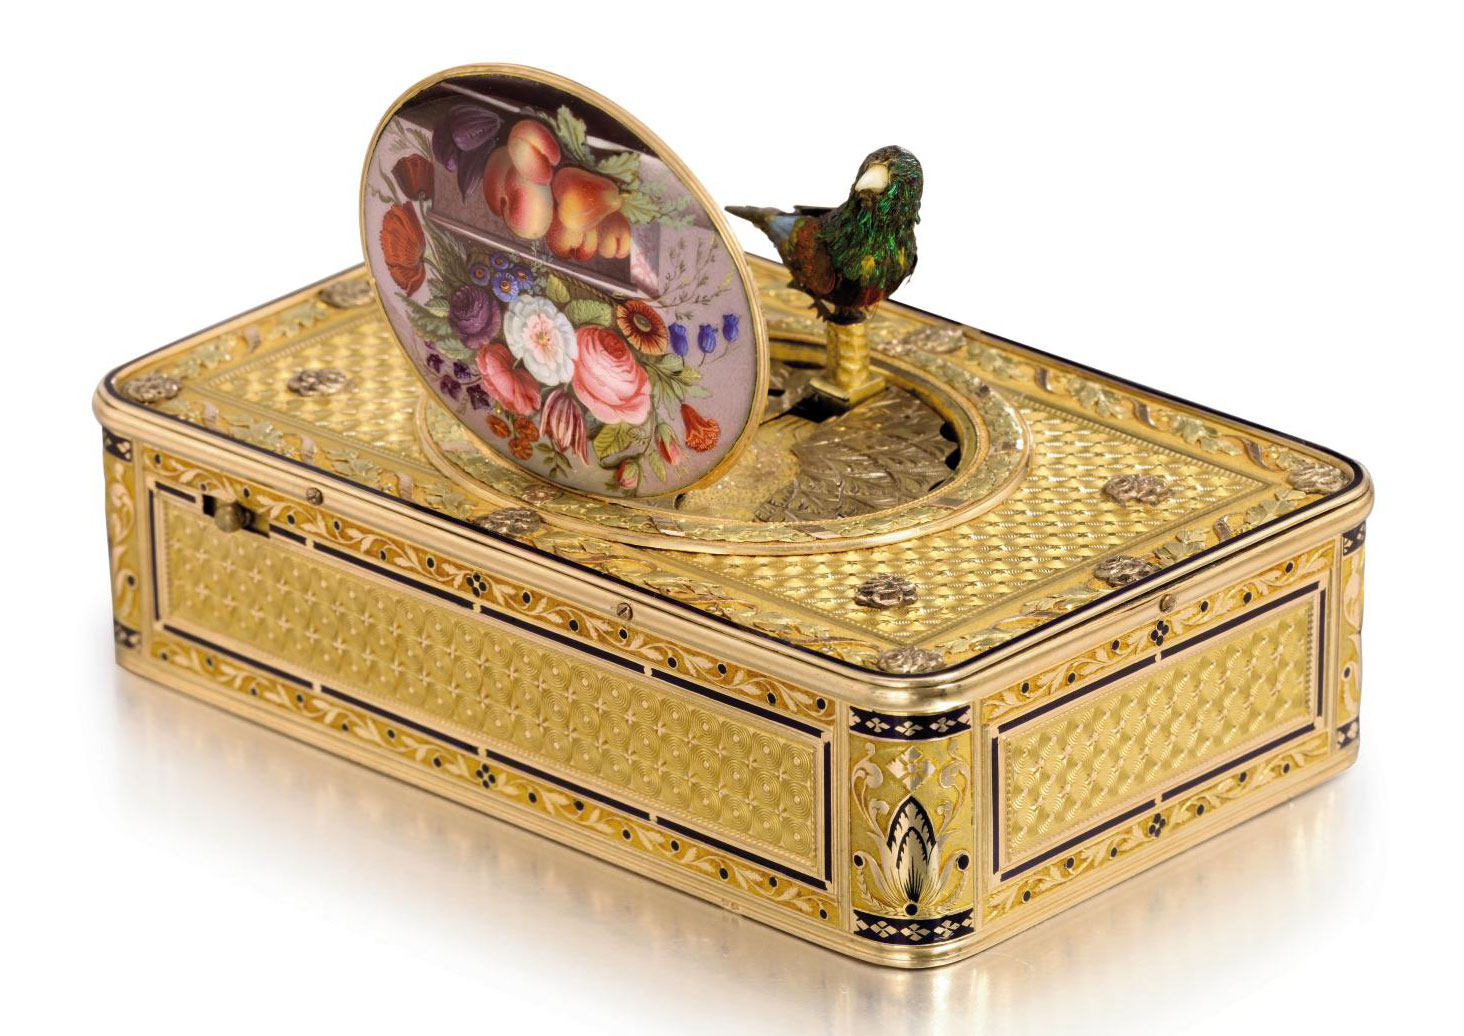 Frères Rochat and Jean-Georges Rémond. An extremely fine and rare 18K vari-colour gold and enamel musical singing bird box with centre seconds watch, made for the Chinese market